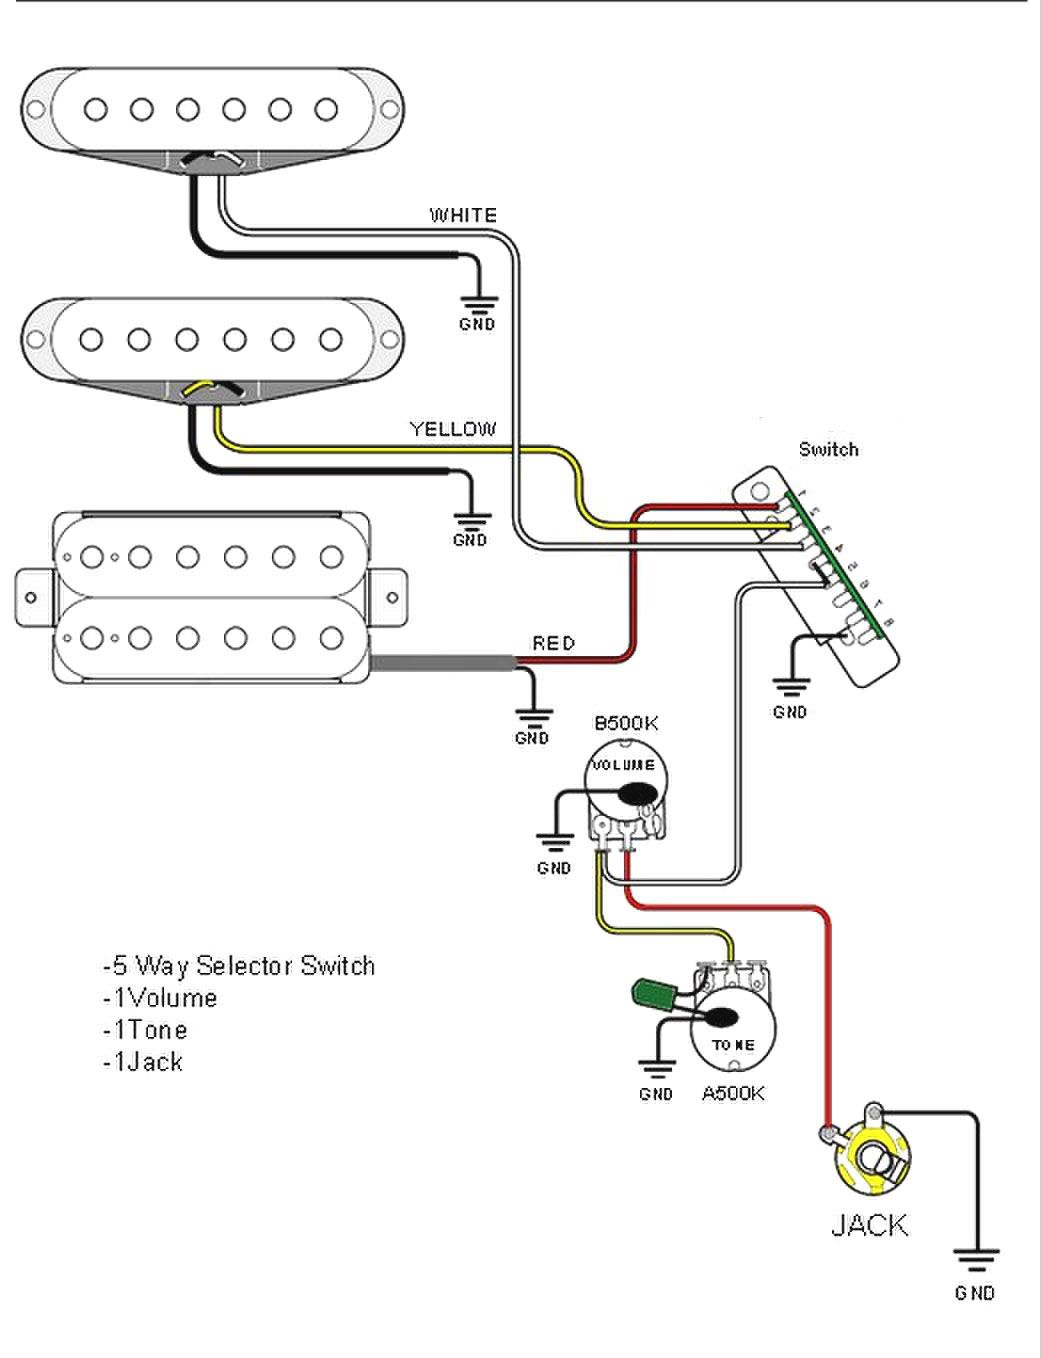 hss wiring diagram hss wiring diagrams hss wiring diagram